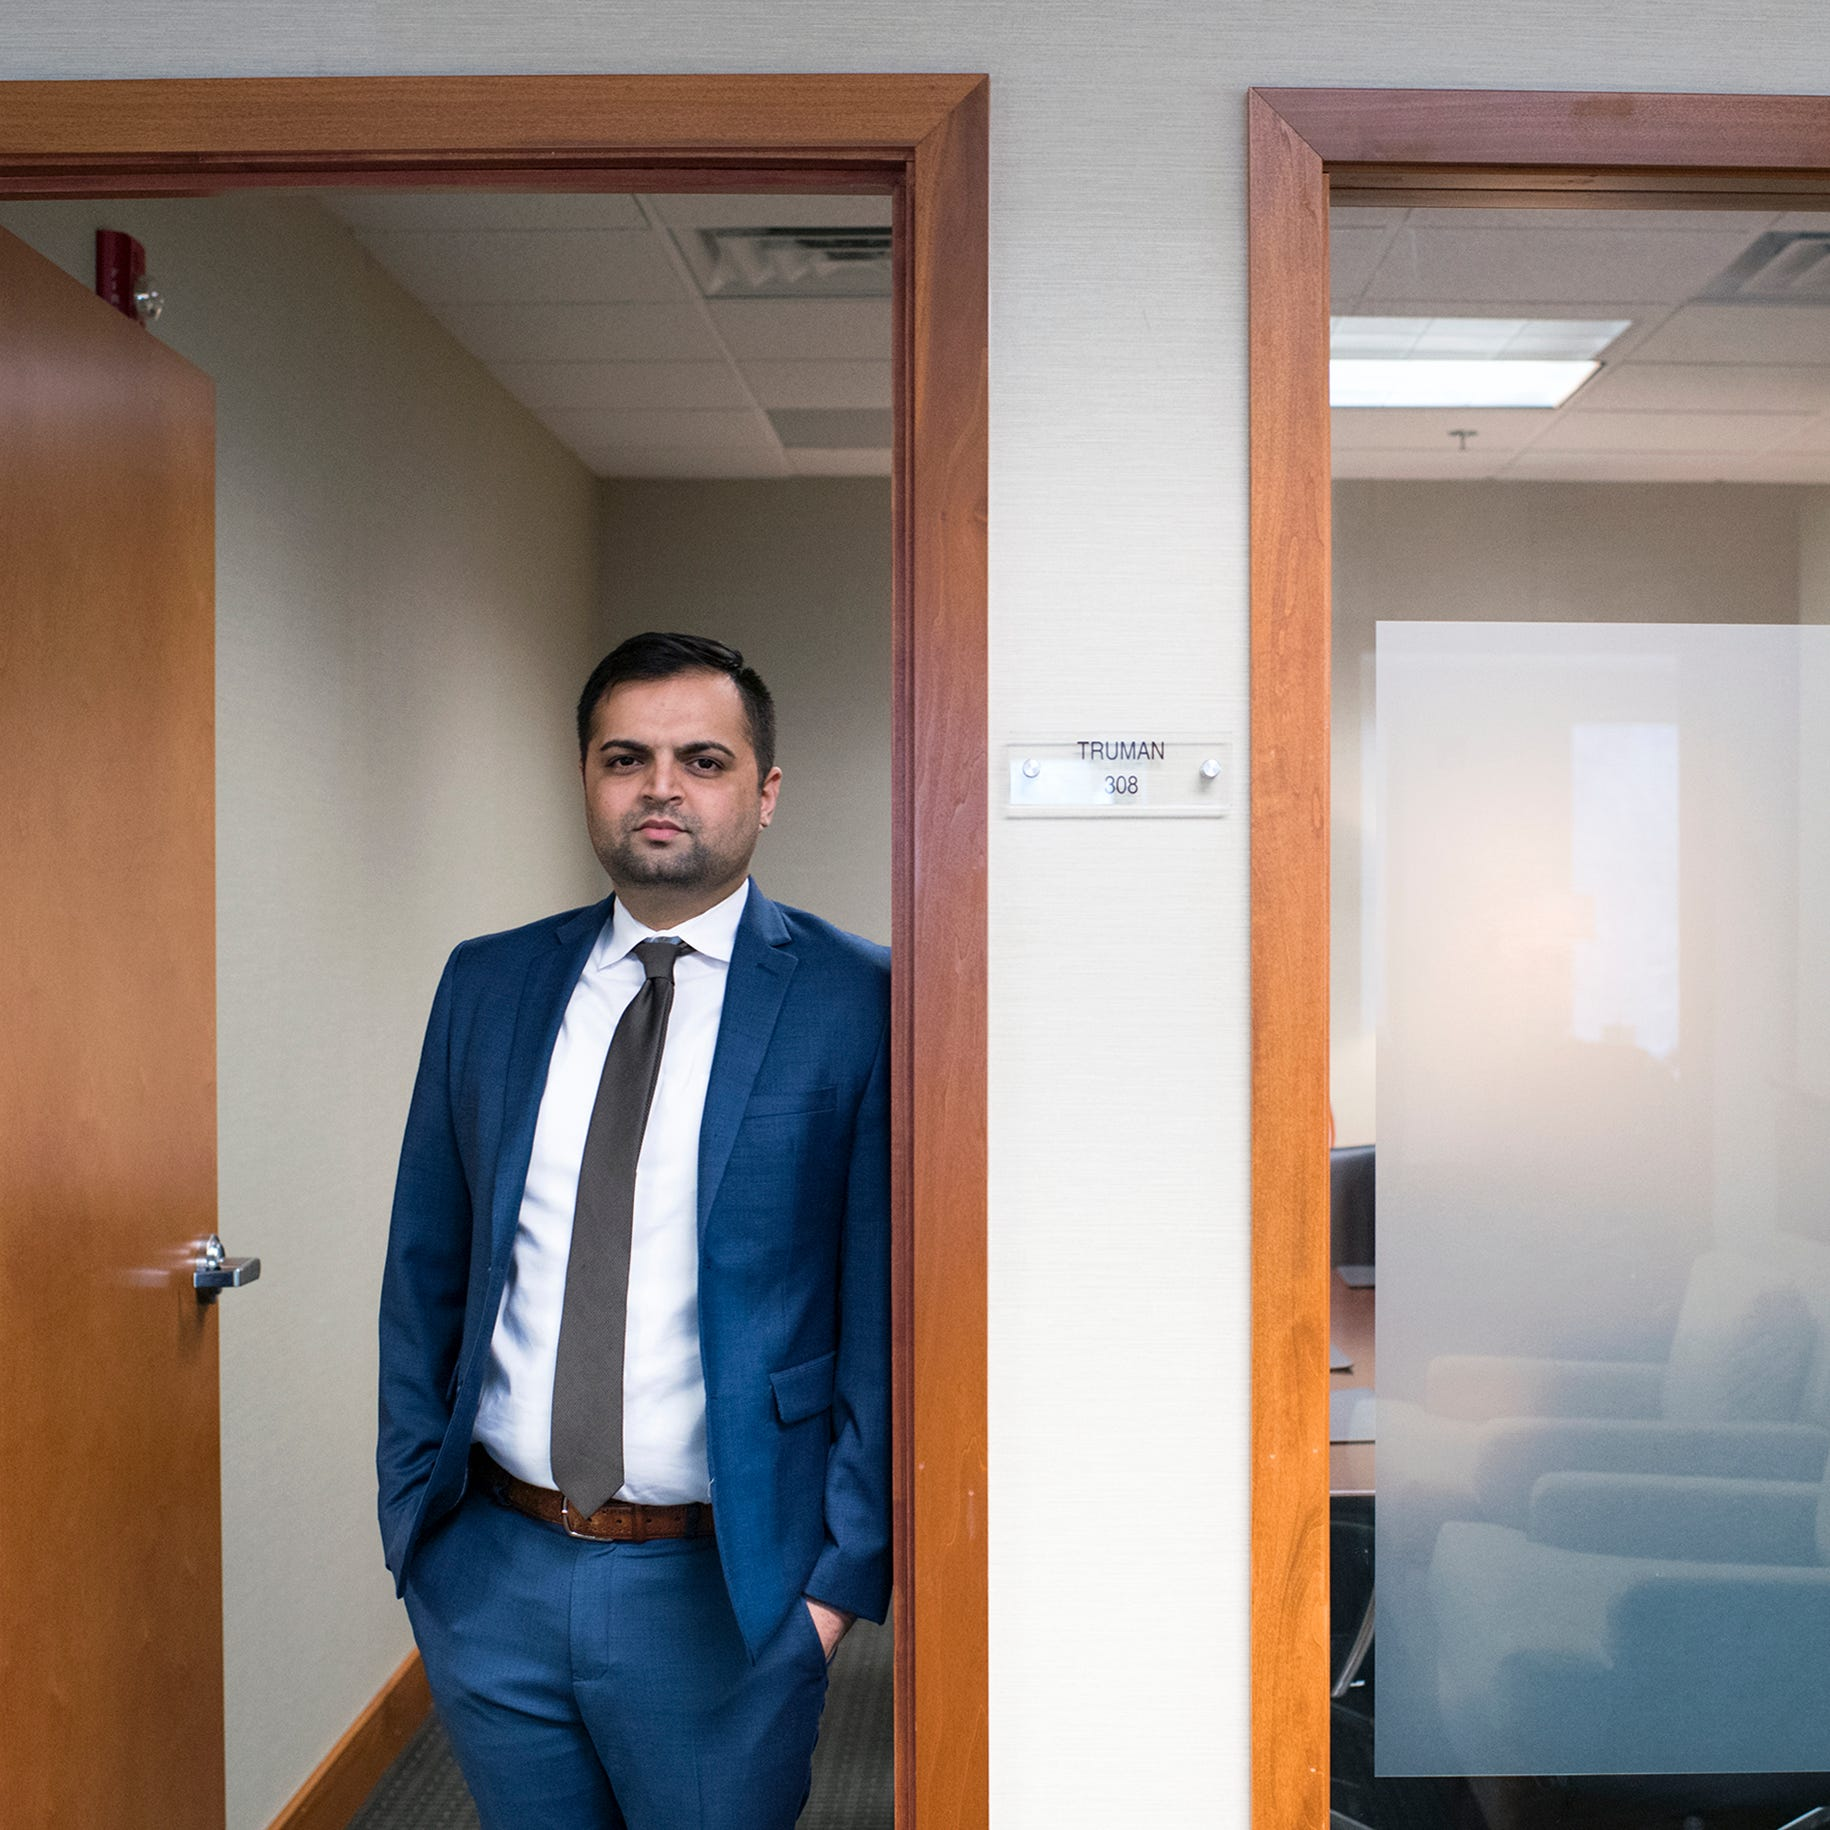 This New Jersey attorney can practice law in two states. But as a 'Dreamer,' the future is still uncertain.